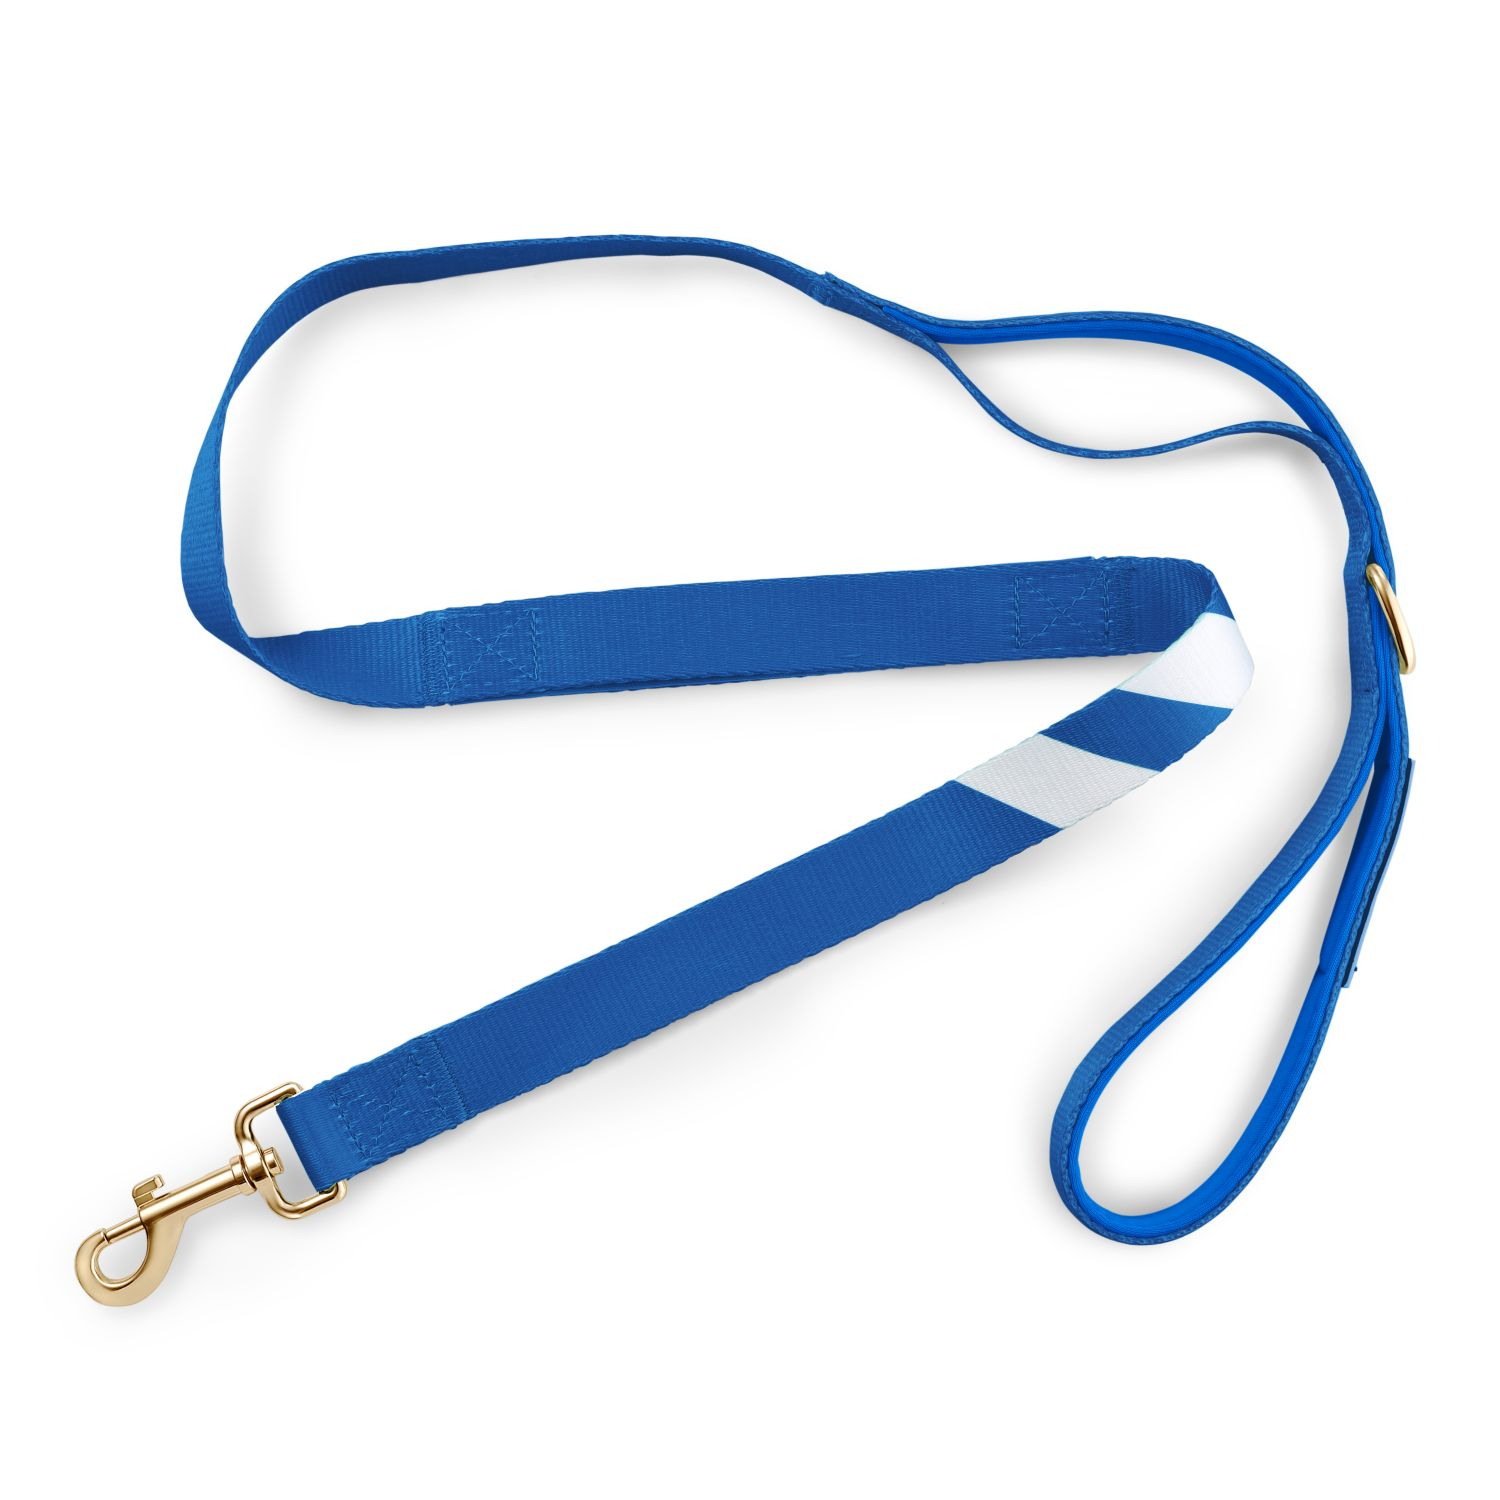 Loyal Blue - City Walker Leash leash bestlifeleashes